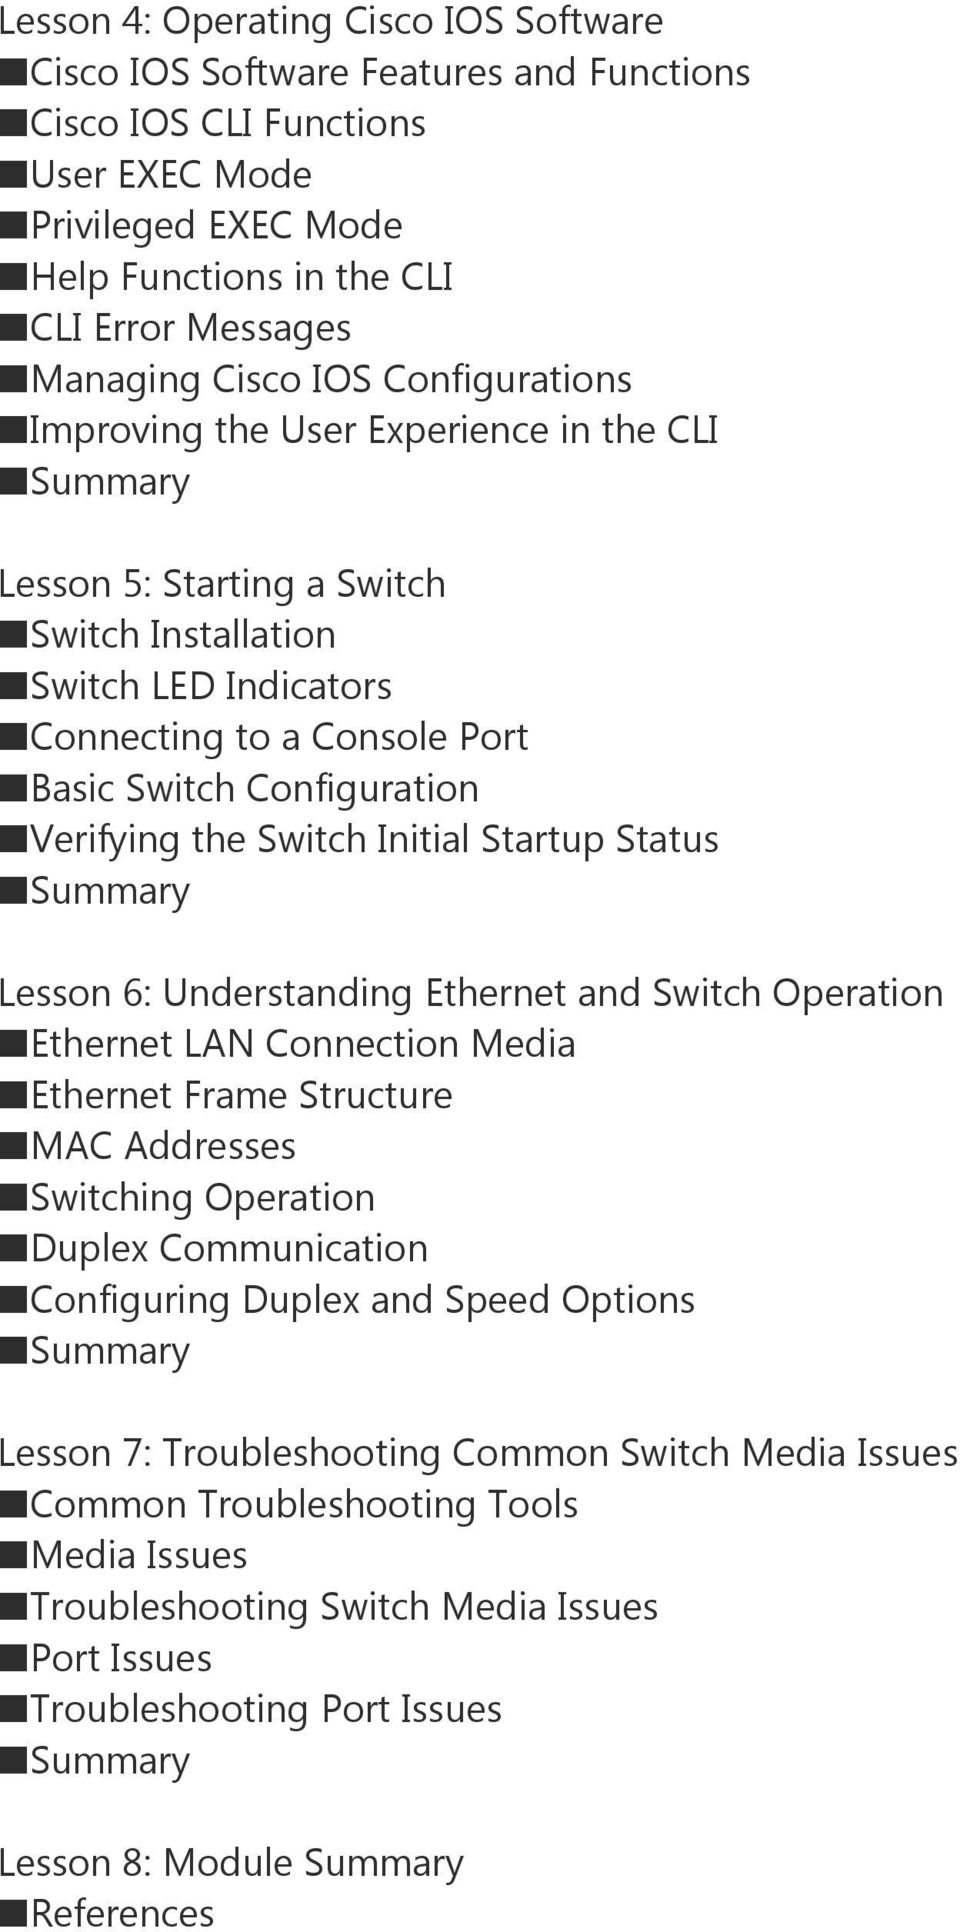 Verifying the Switch Initial Startup Status Lesson 6: Understanding Ethernet and Switch Operation Ethernet LAN Connection Media Ethernet Frame Structure MAC Addresses Switching Operation Duplex